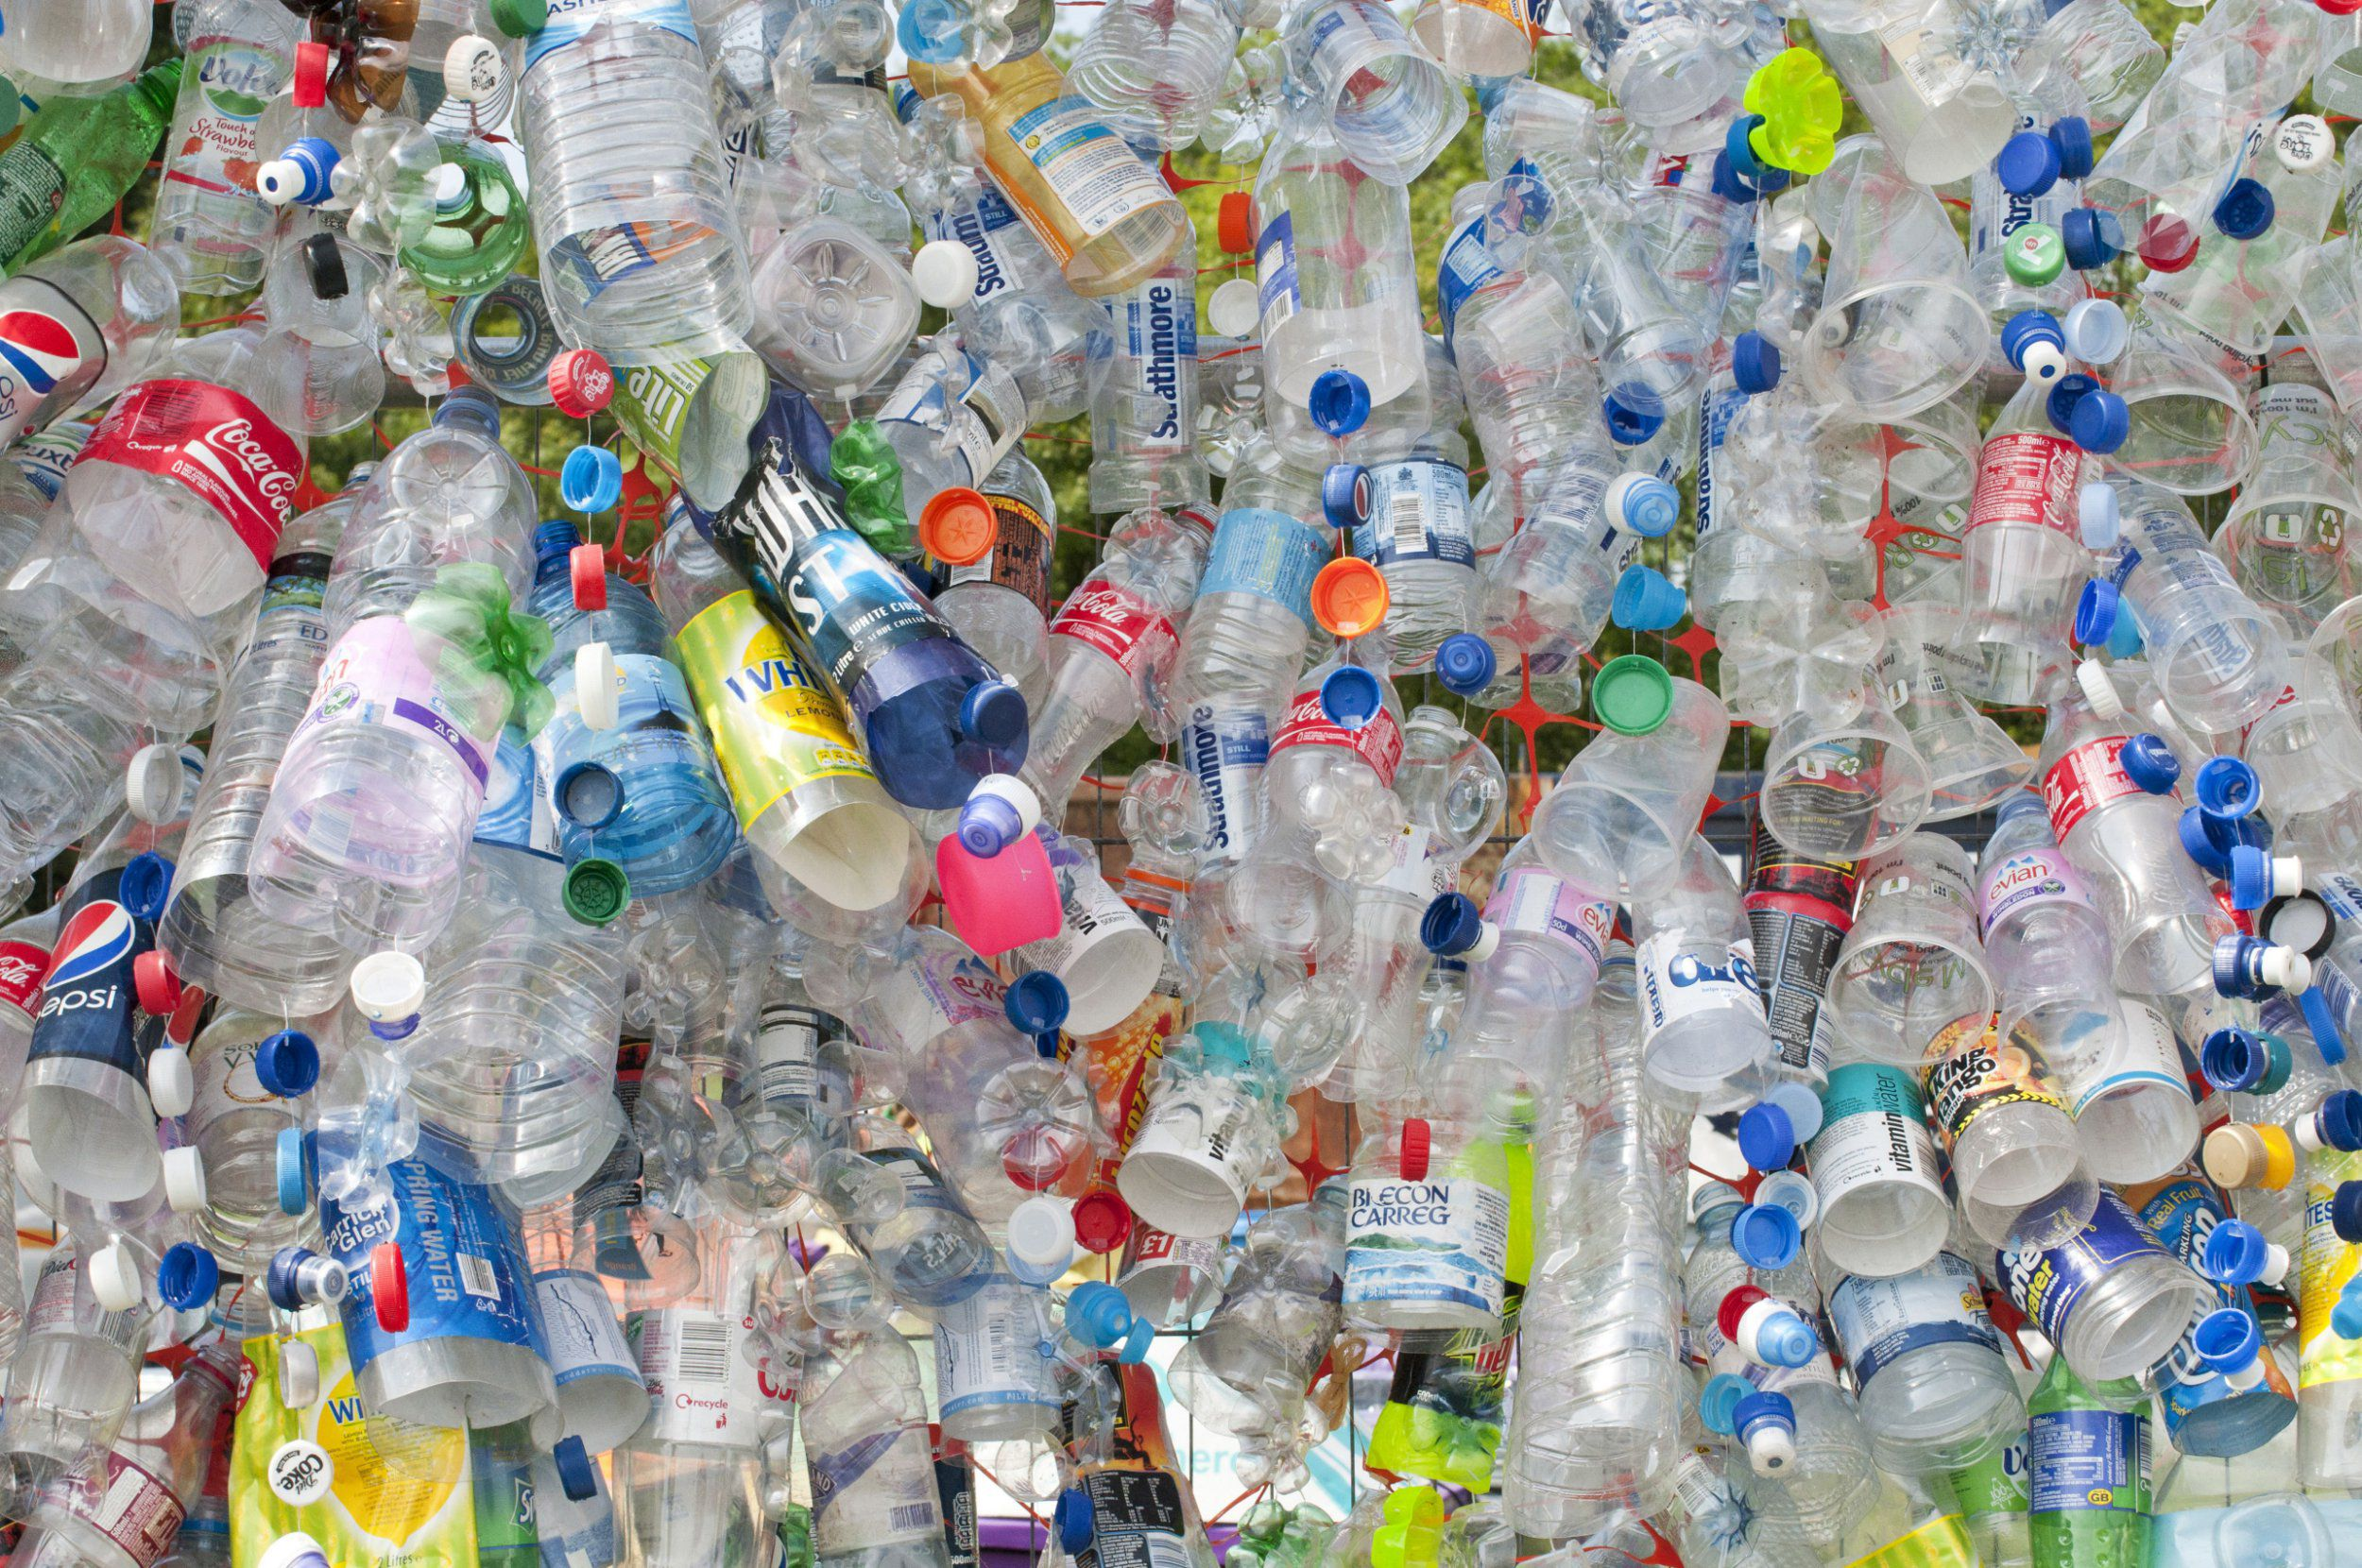 Recycled plastic could provide 75% of the UK's plastic demands